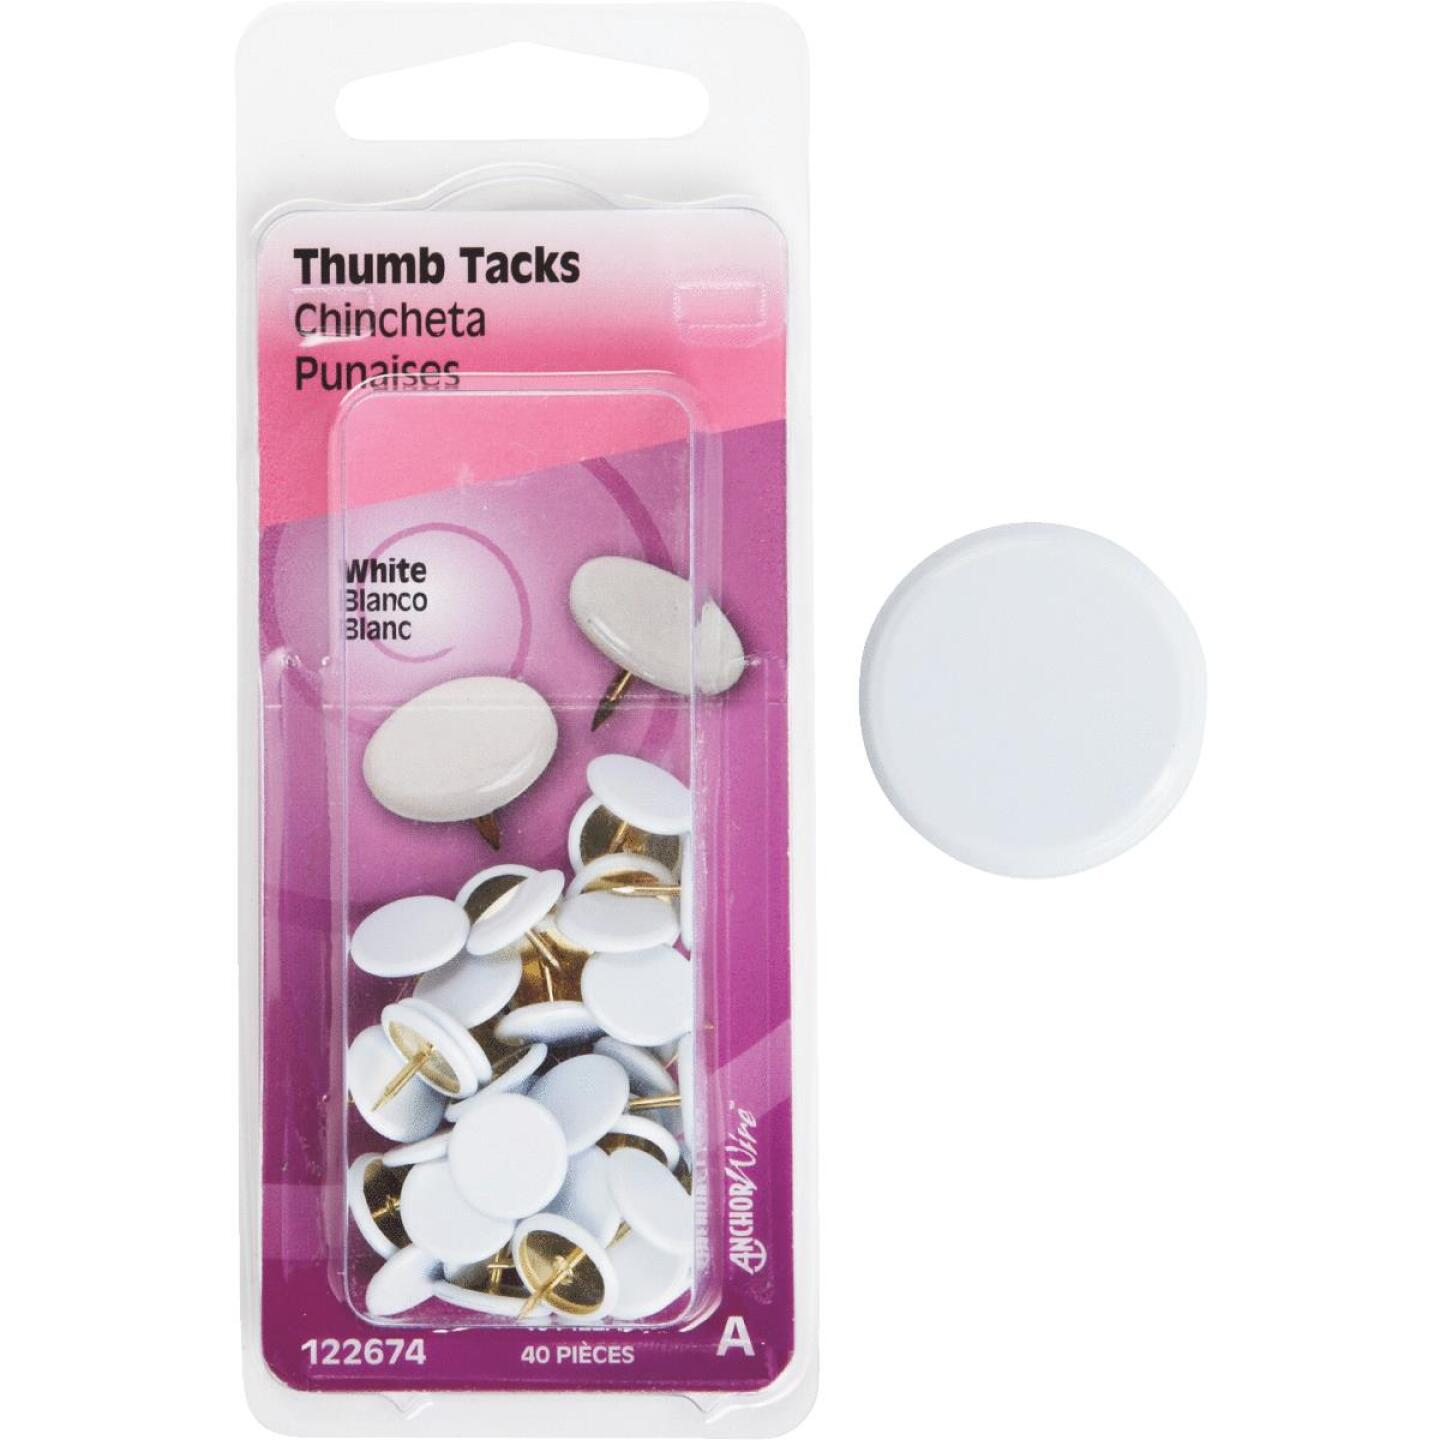 Hillman Anchor Wire White 23/64 In. x 15/64 In. Thumb Tack (40 Ct.) Image 1